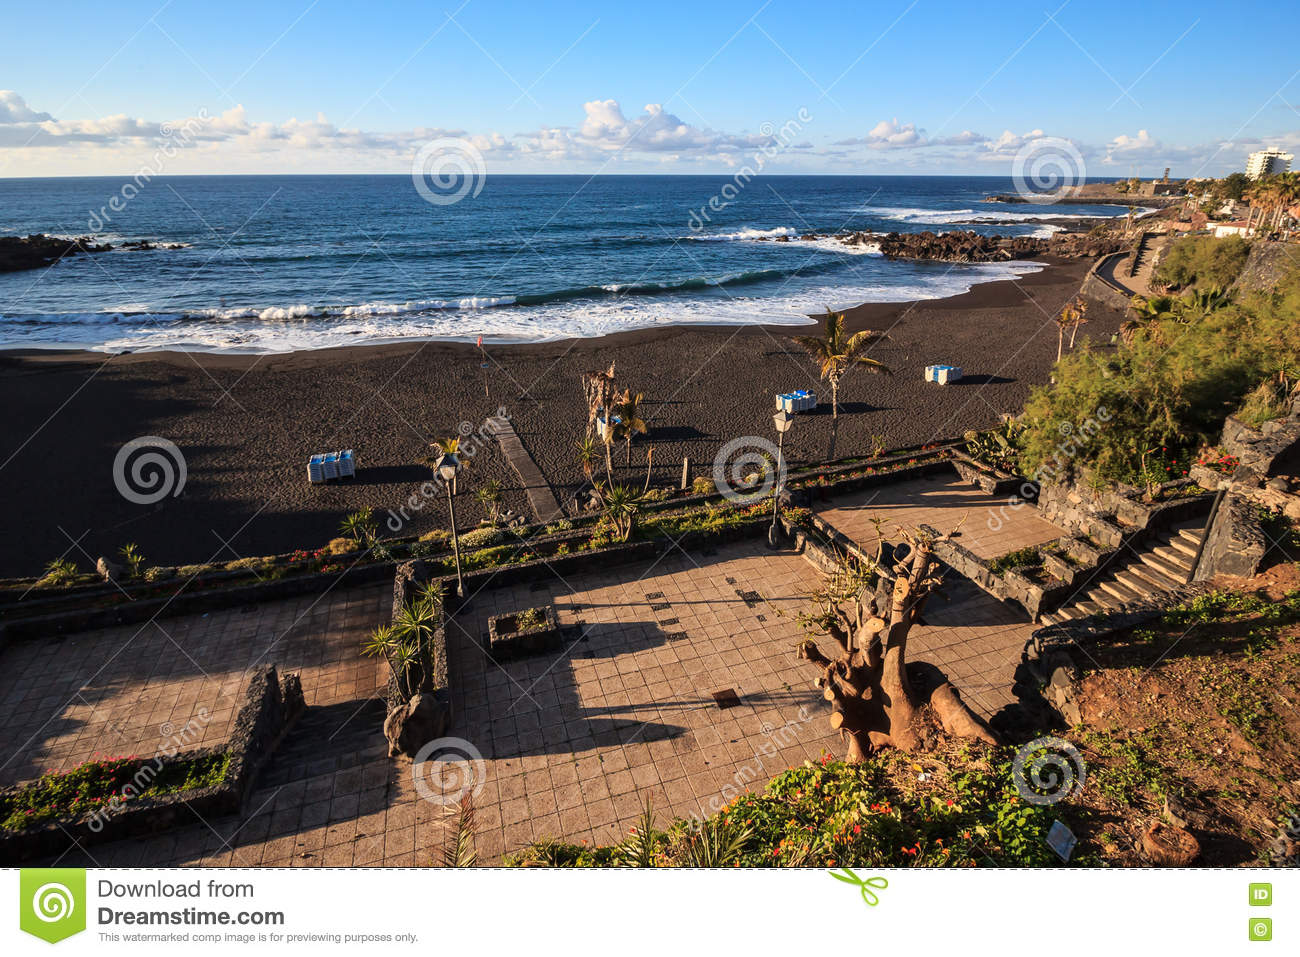 Playa jardin puerto de la cruz stock photo image 72644767 - Playa puerto de la cruz tenerife ...